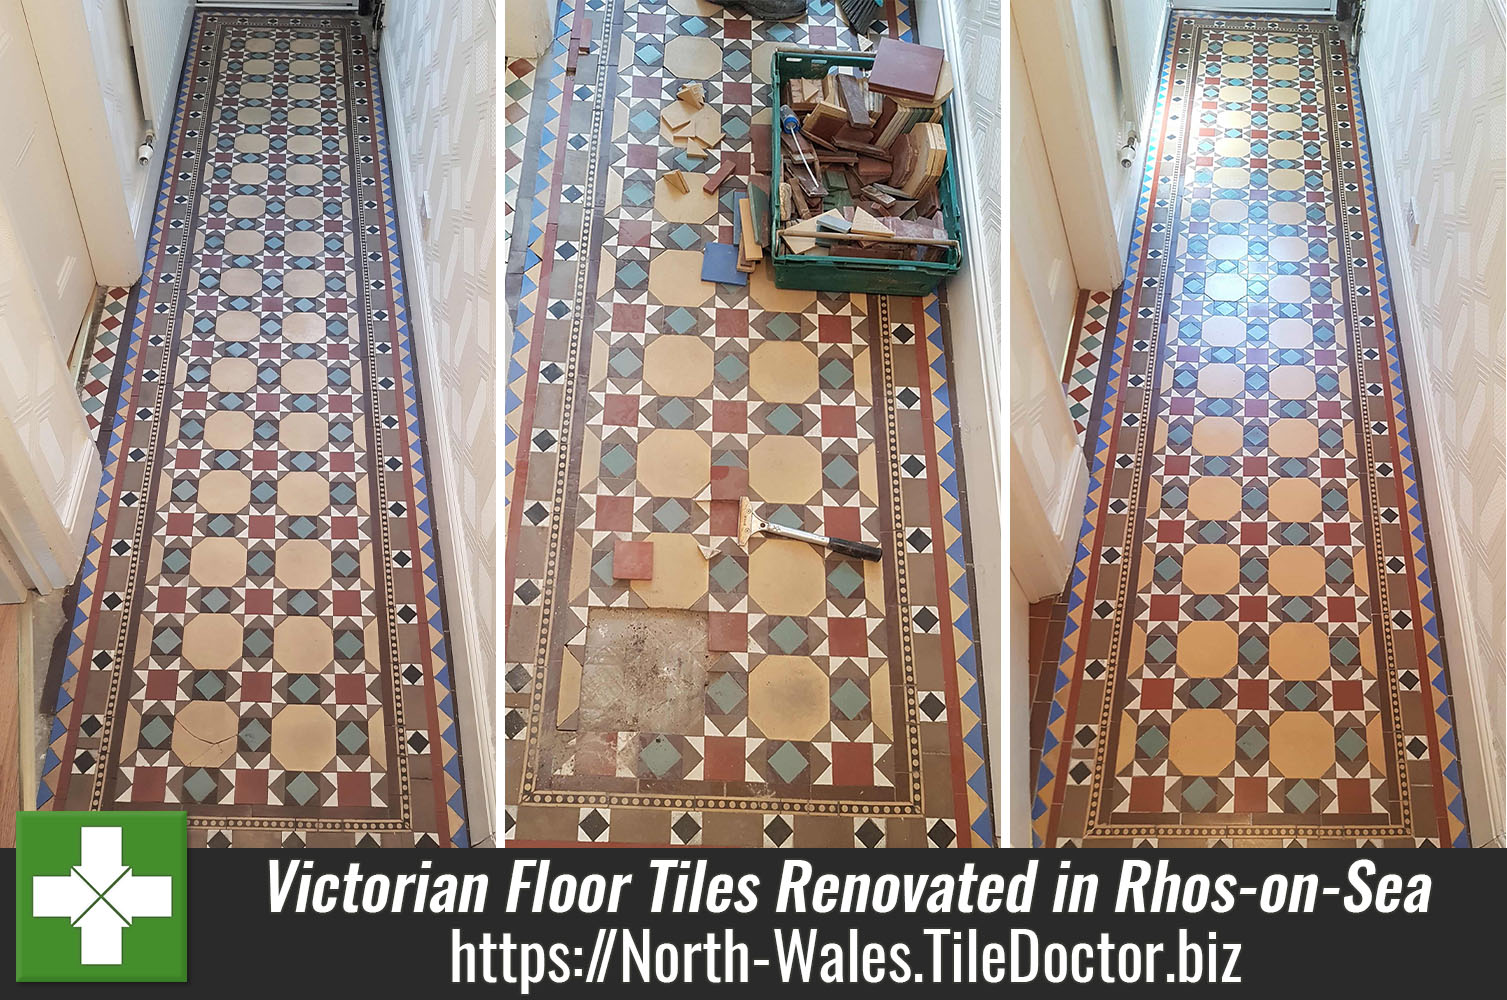 Renovating a Victorian Tiled Hallway in Rhos-on-Sea